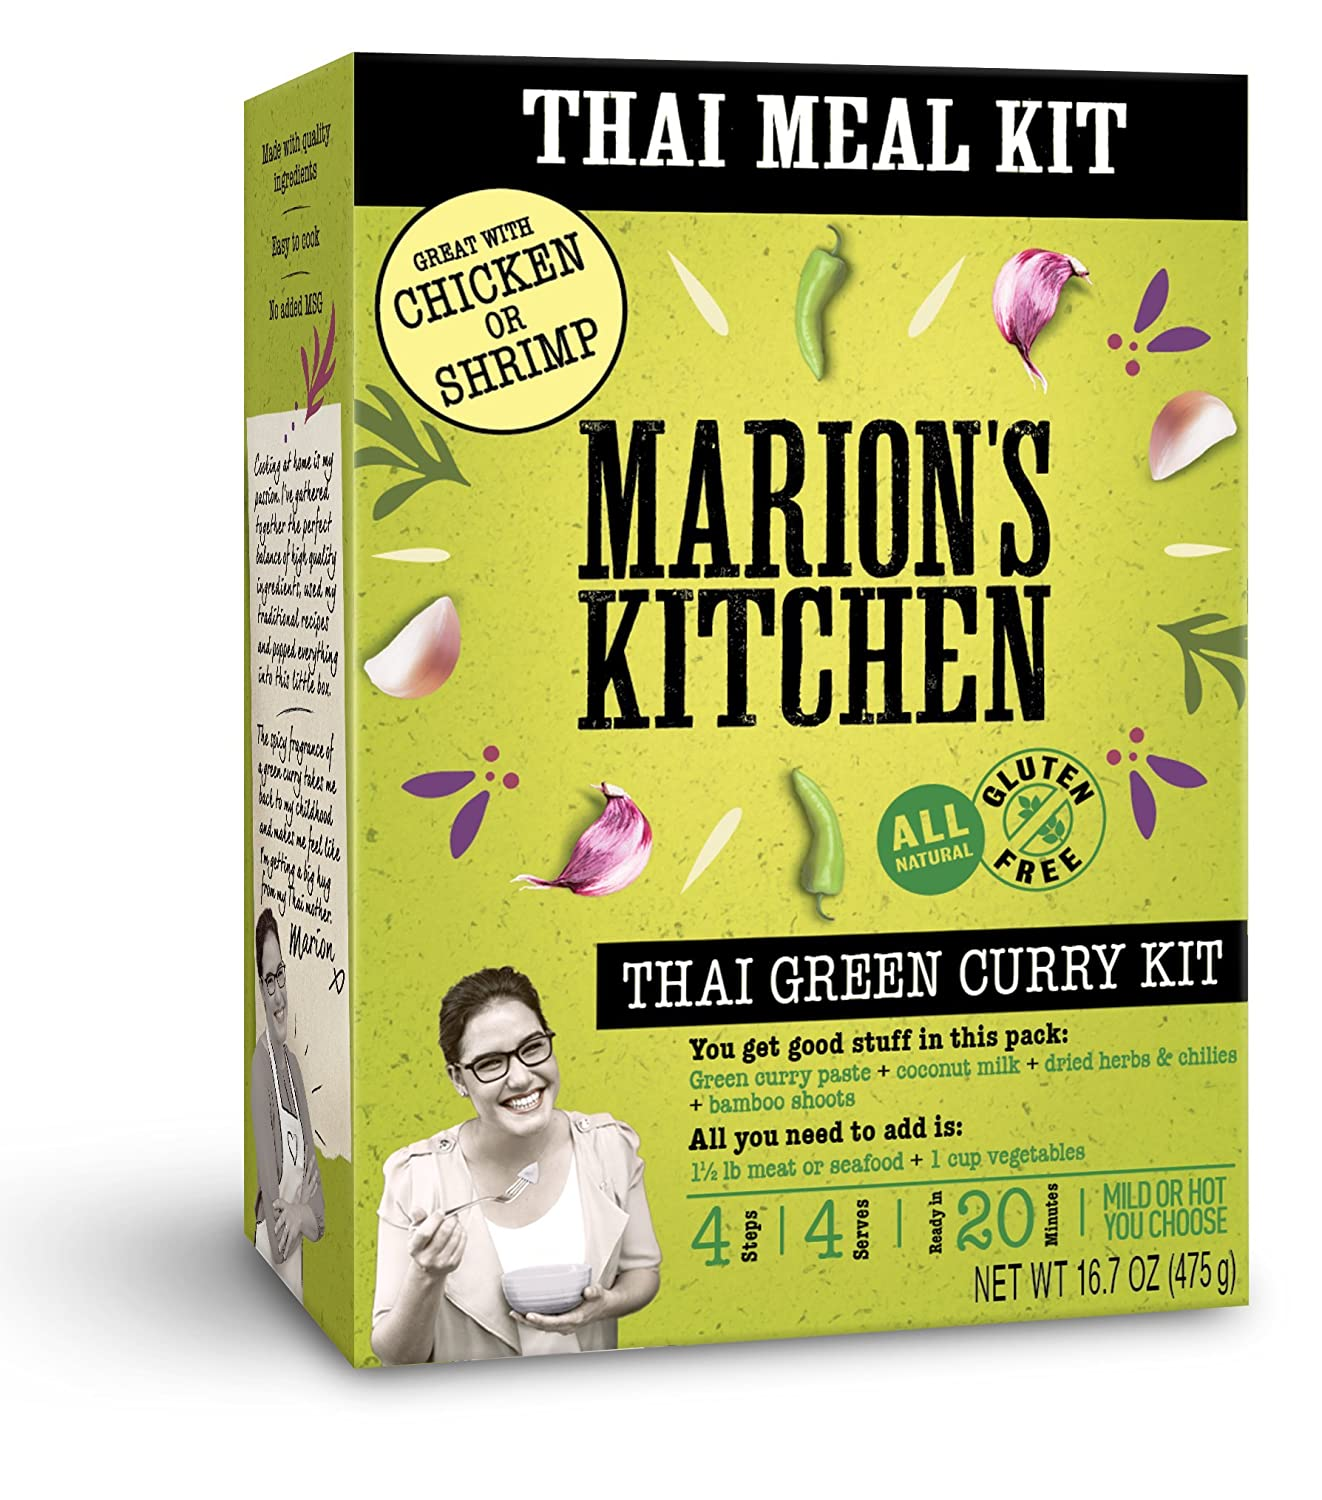 Thai Green Curry Meal Kit By Marion S Kitchen 5 Pack Quick Easy All Natural Thai Home Cooking